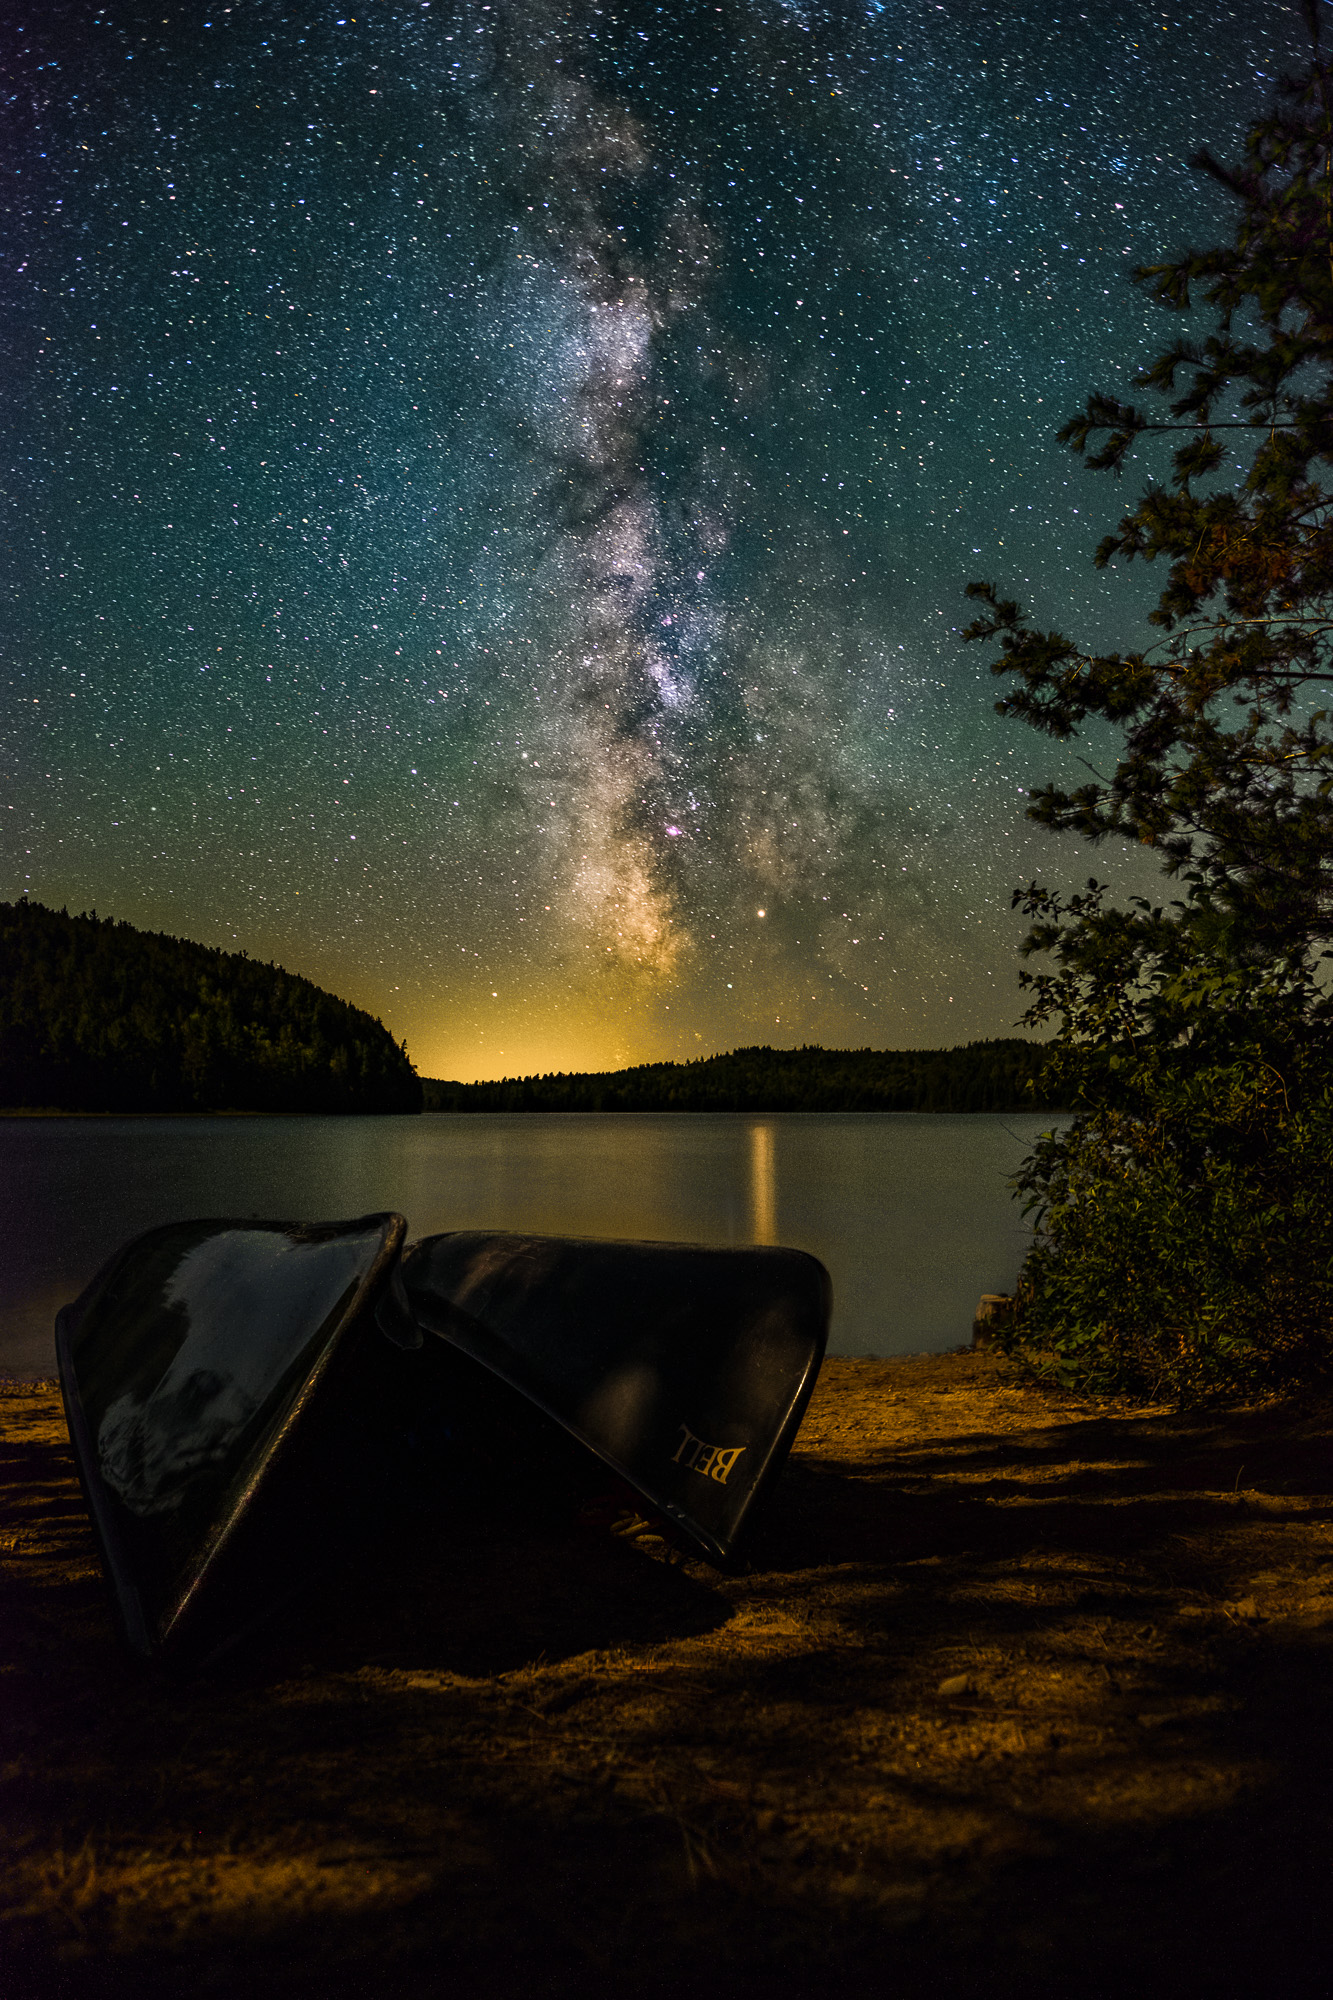 Canoes, Moonlight and the Milky Way